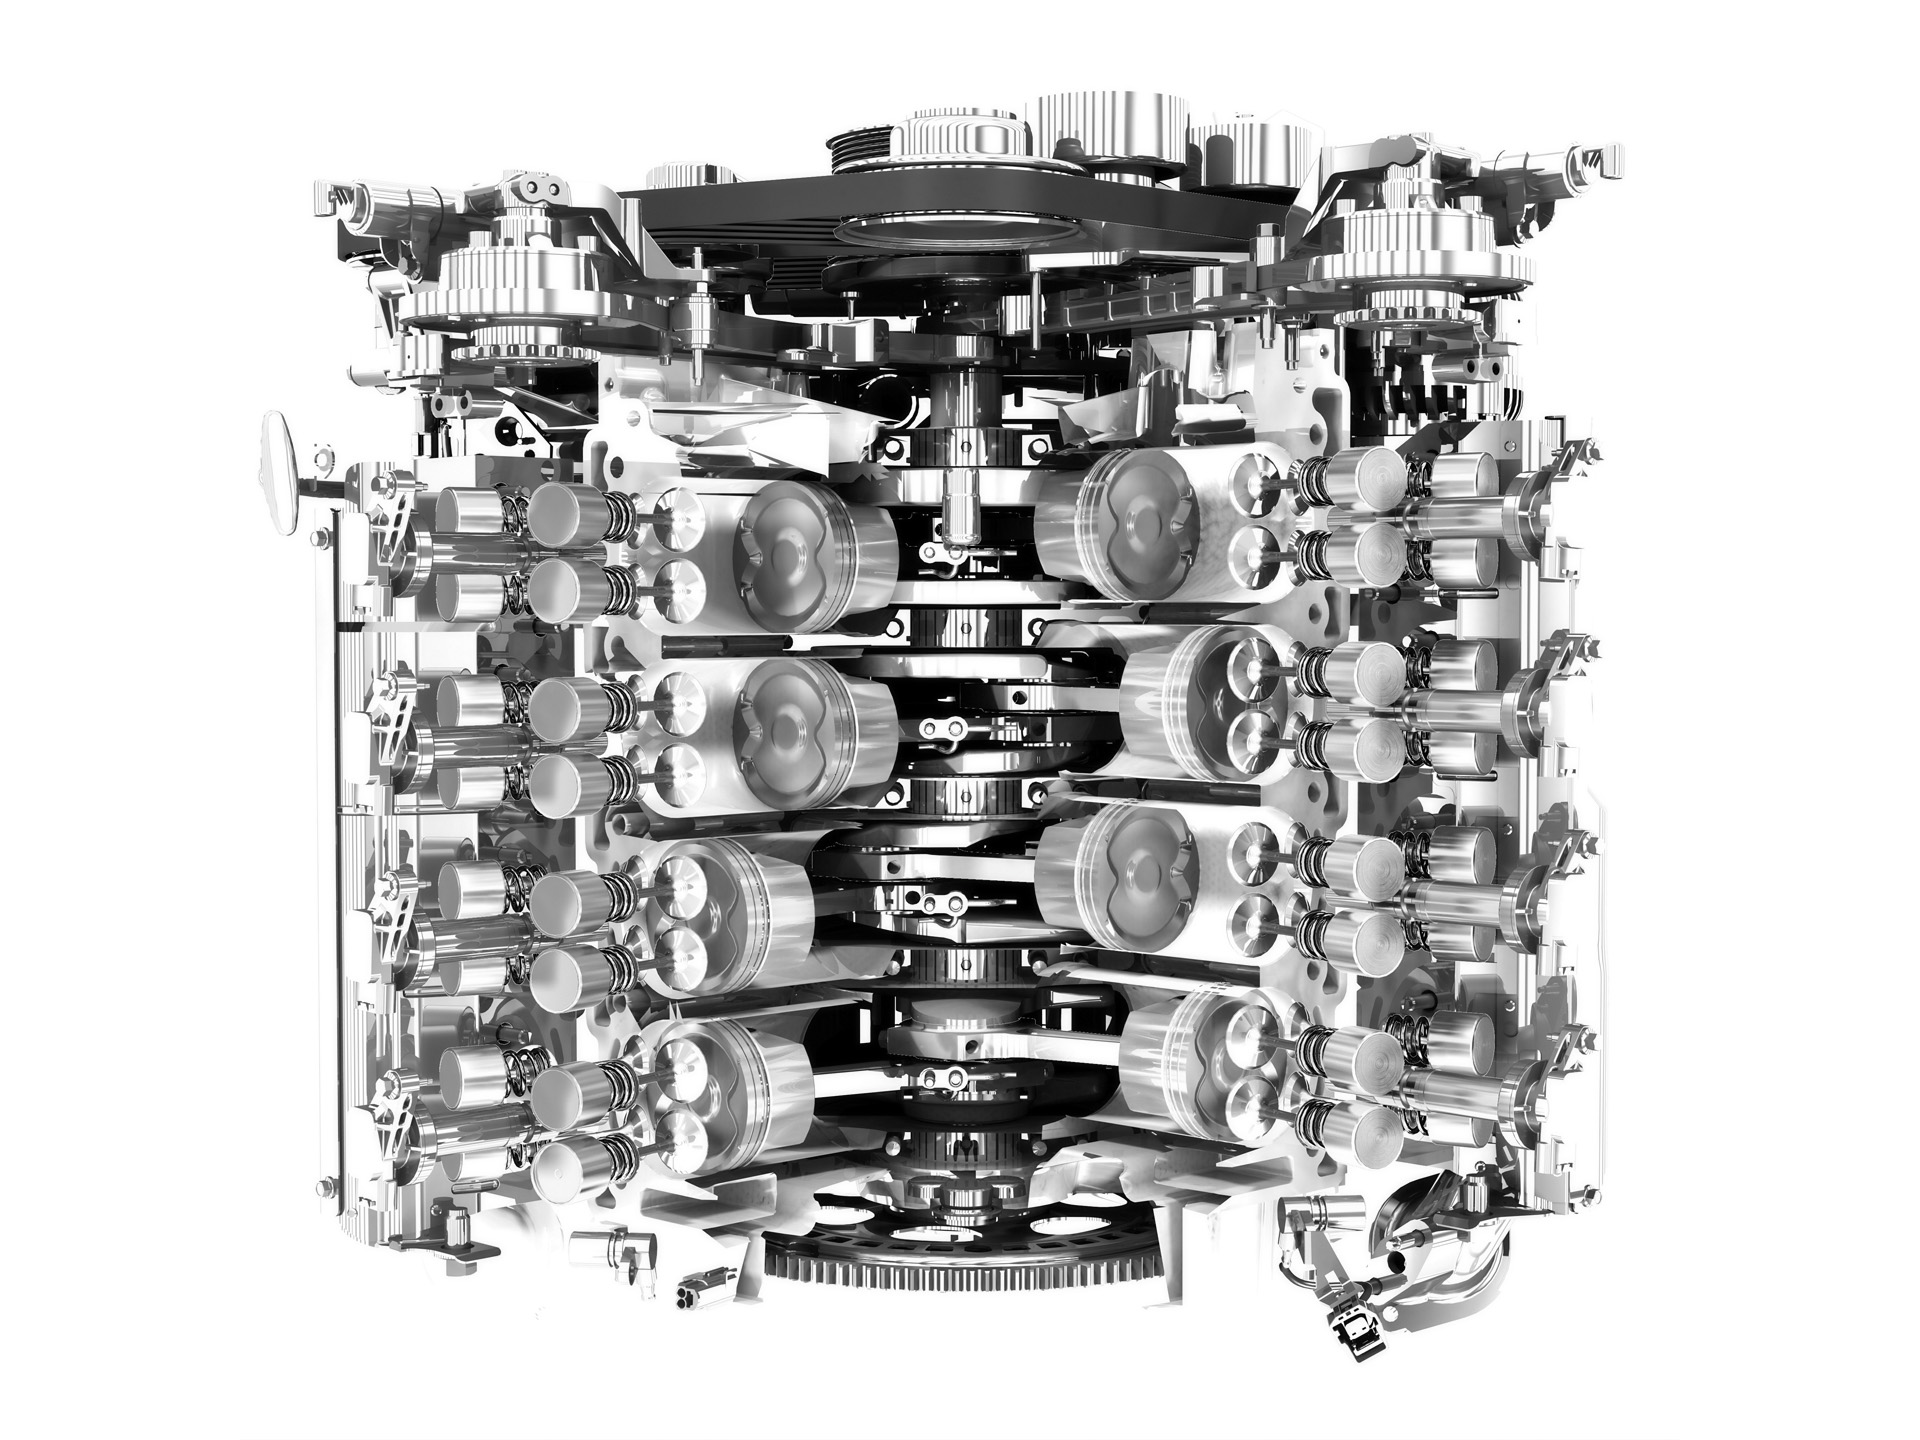 Sample U1034 Engine